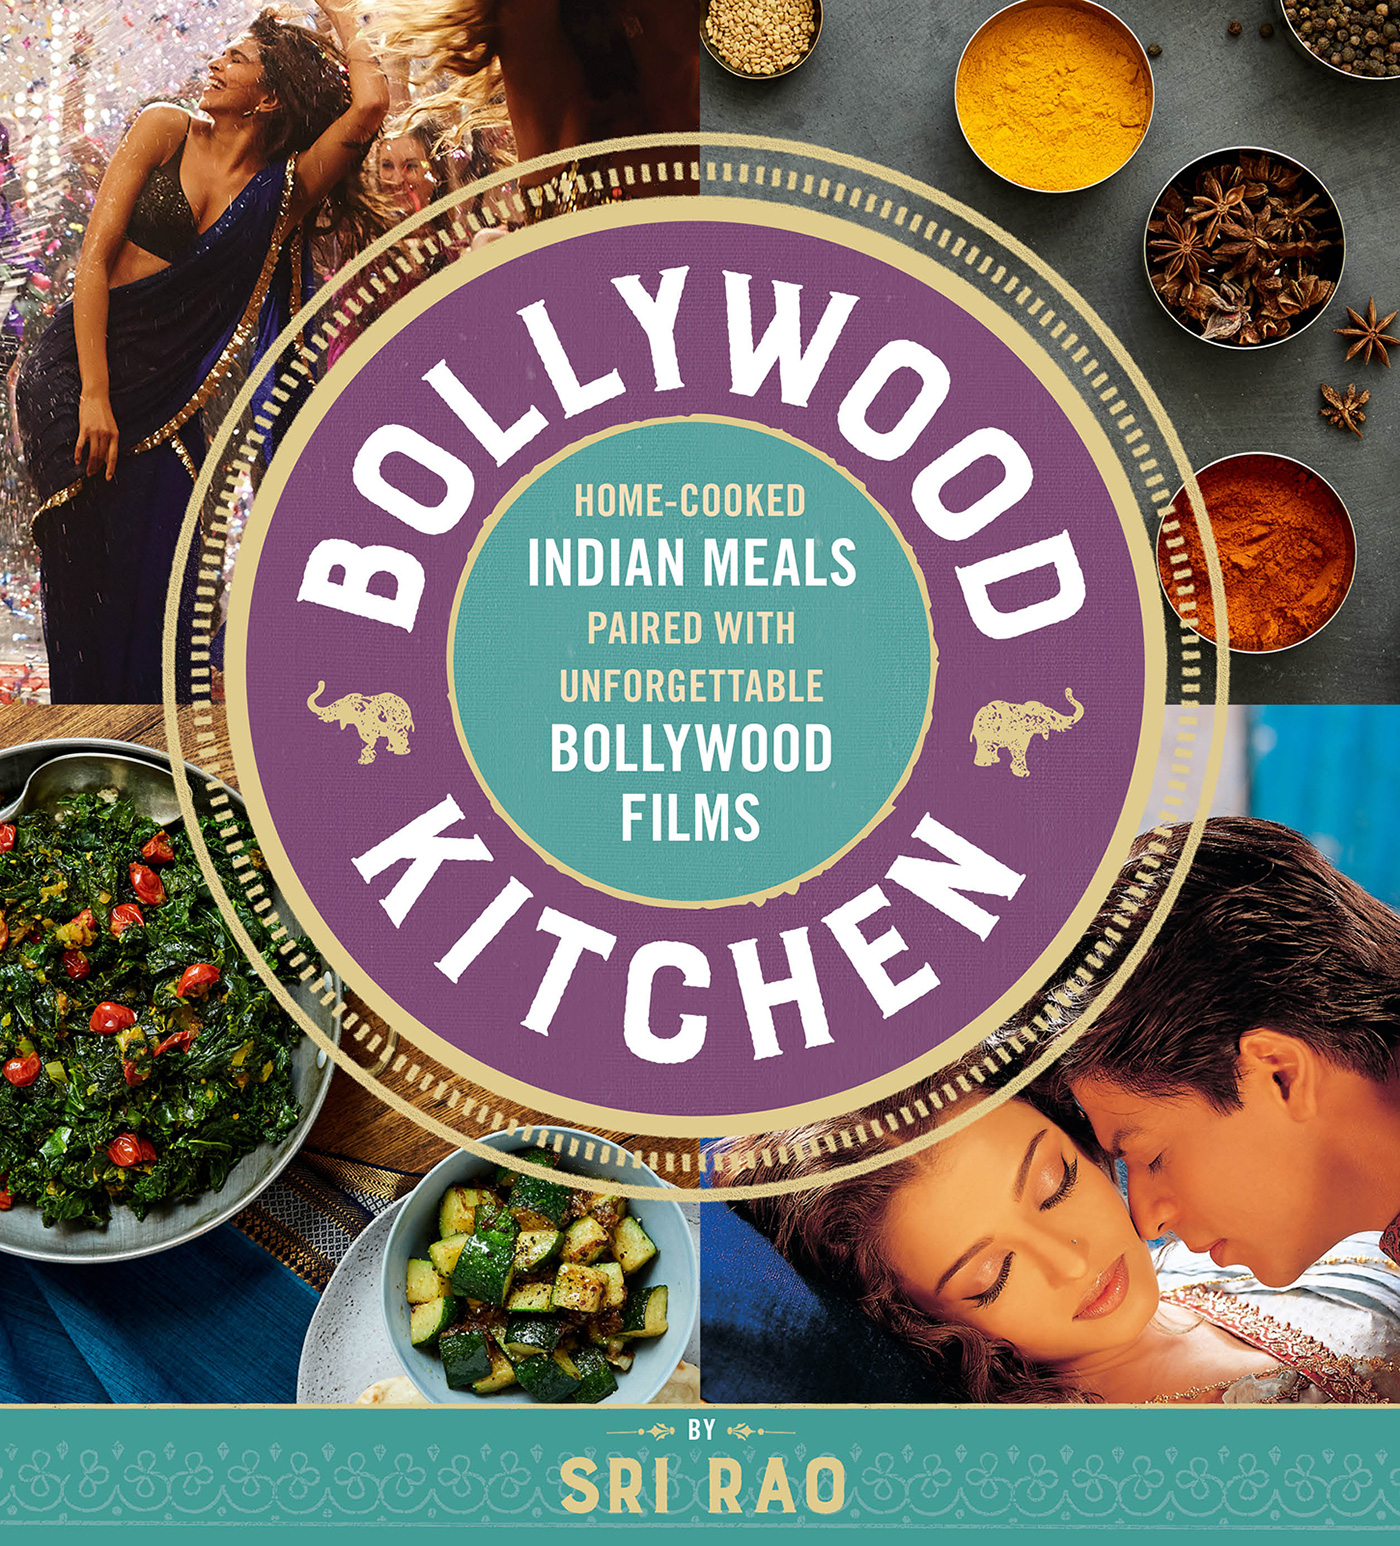 The Bollywood Kitchen Cover Sri Rao feast meets west.jpg